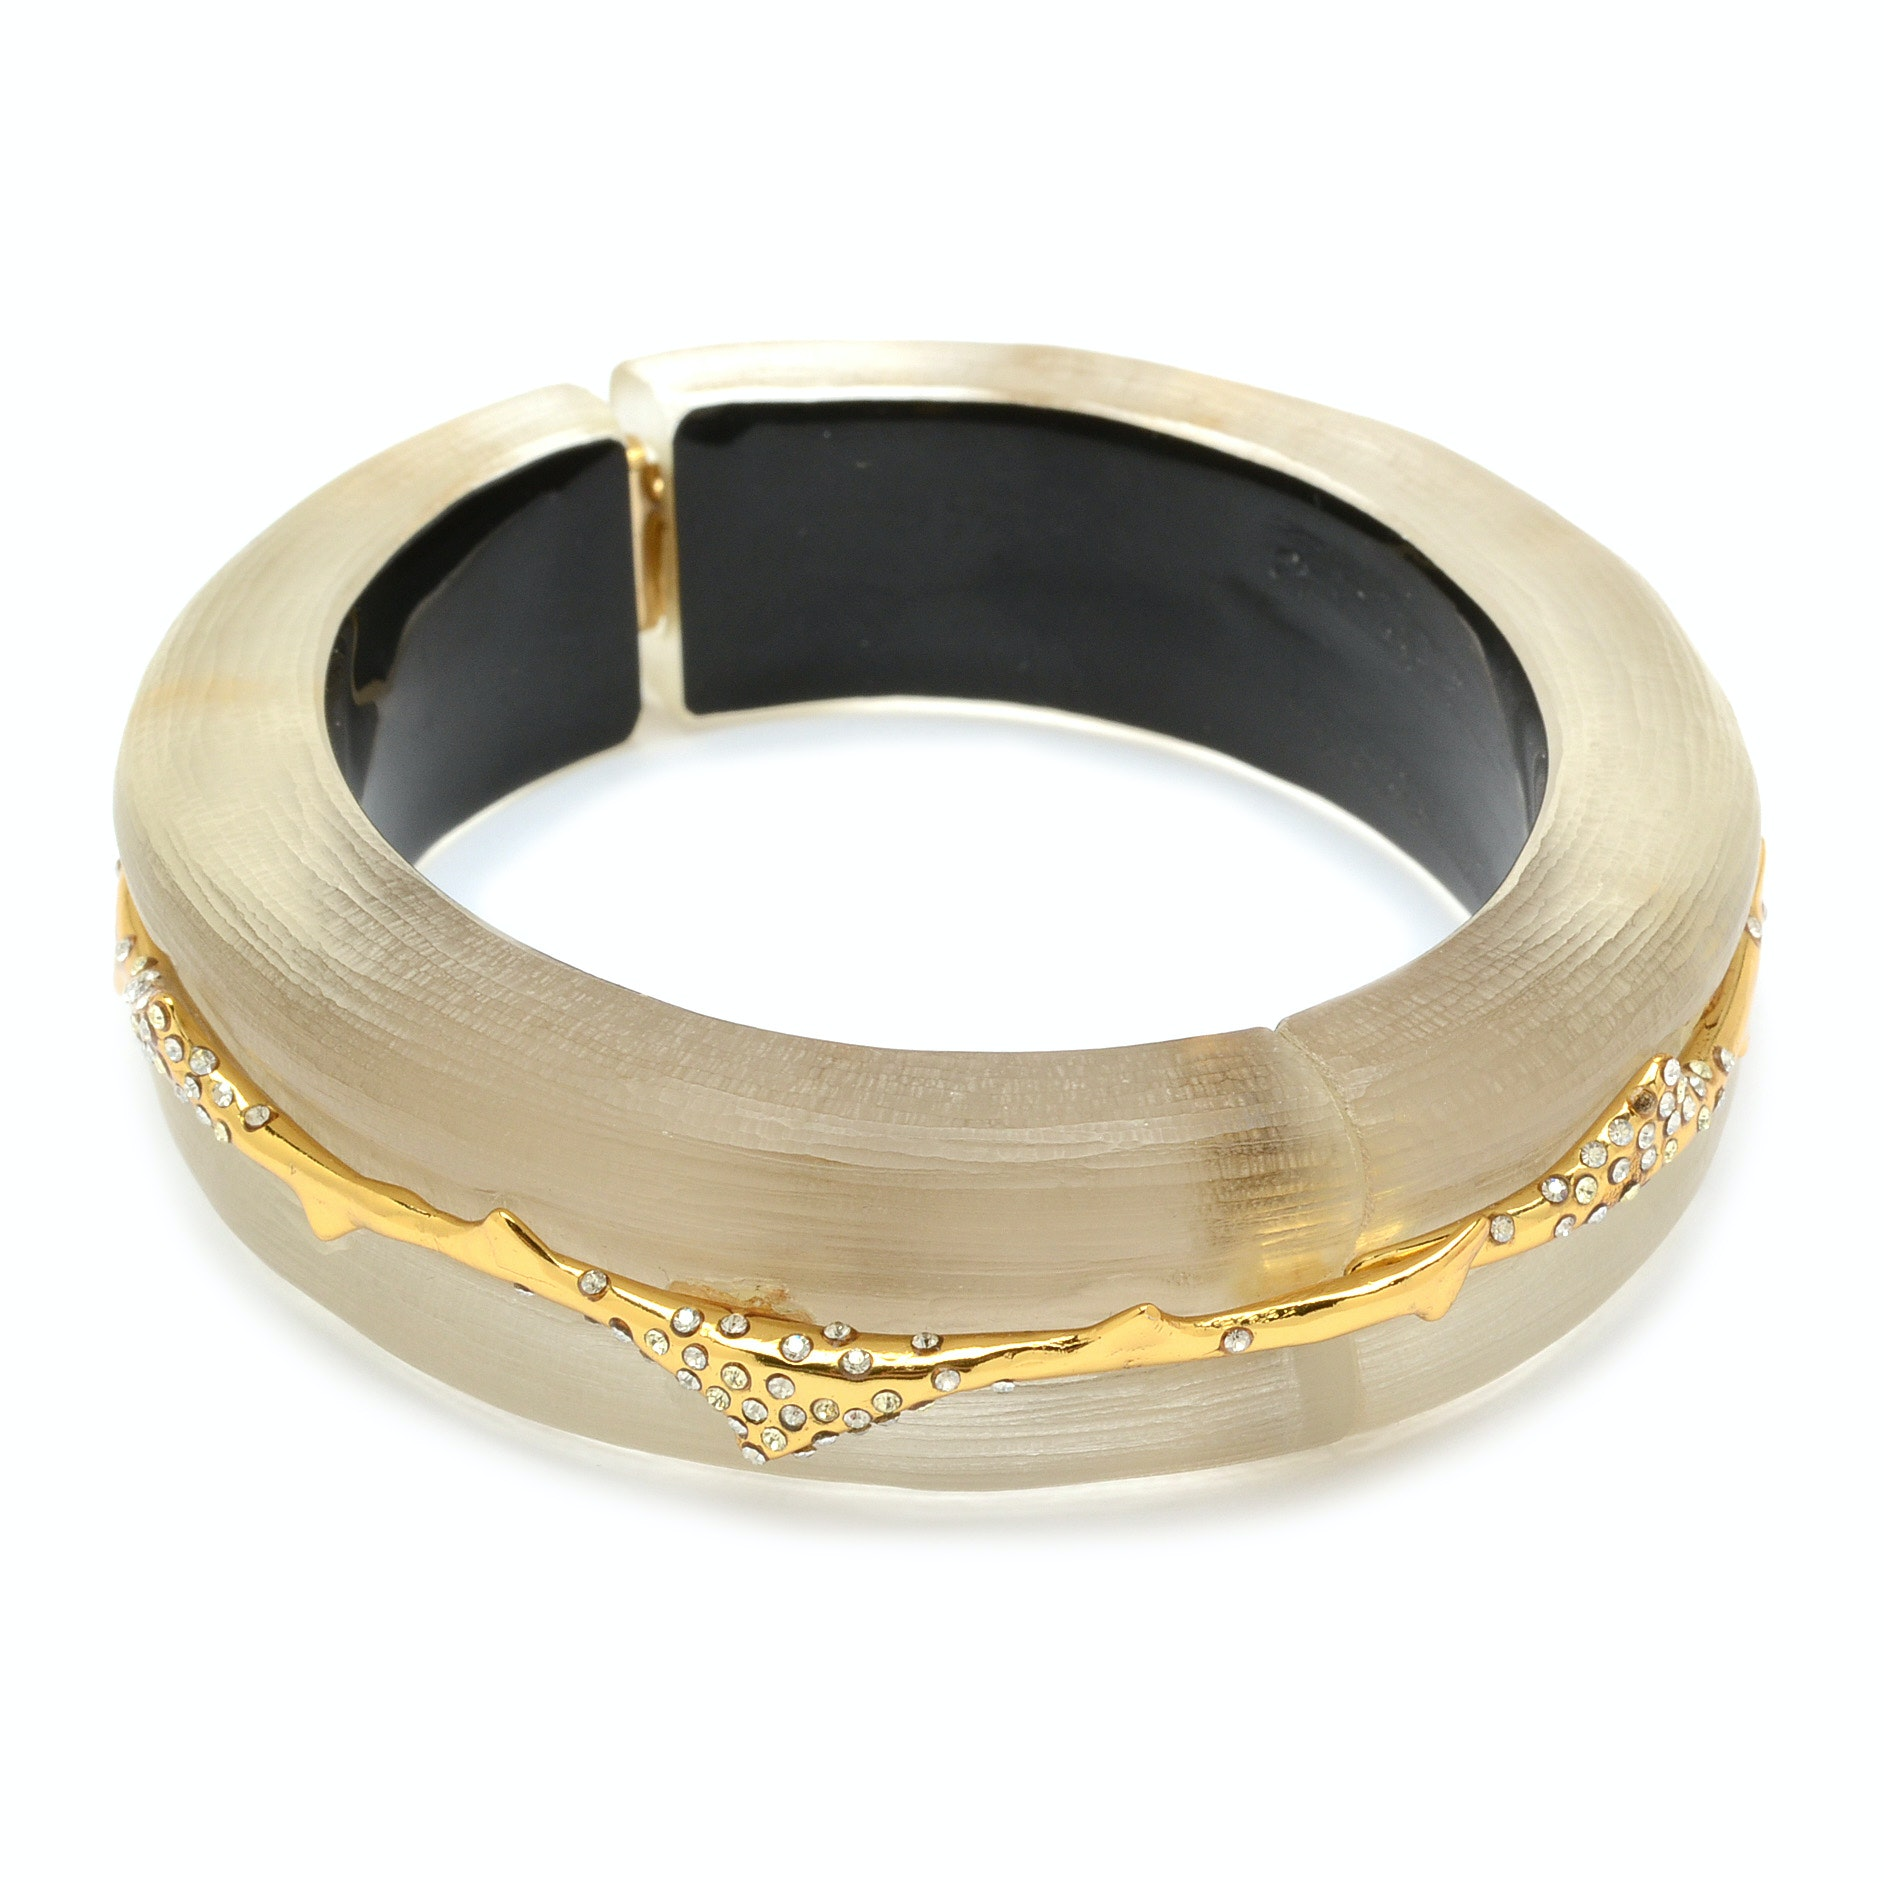 Alexis Bitar Designer Hinged Bangle Bracelet